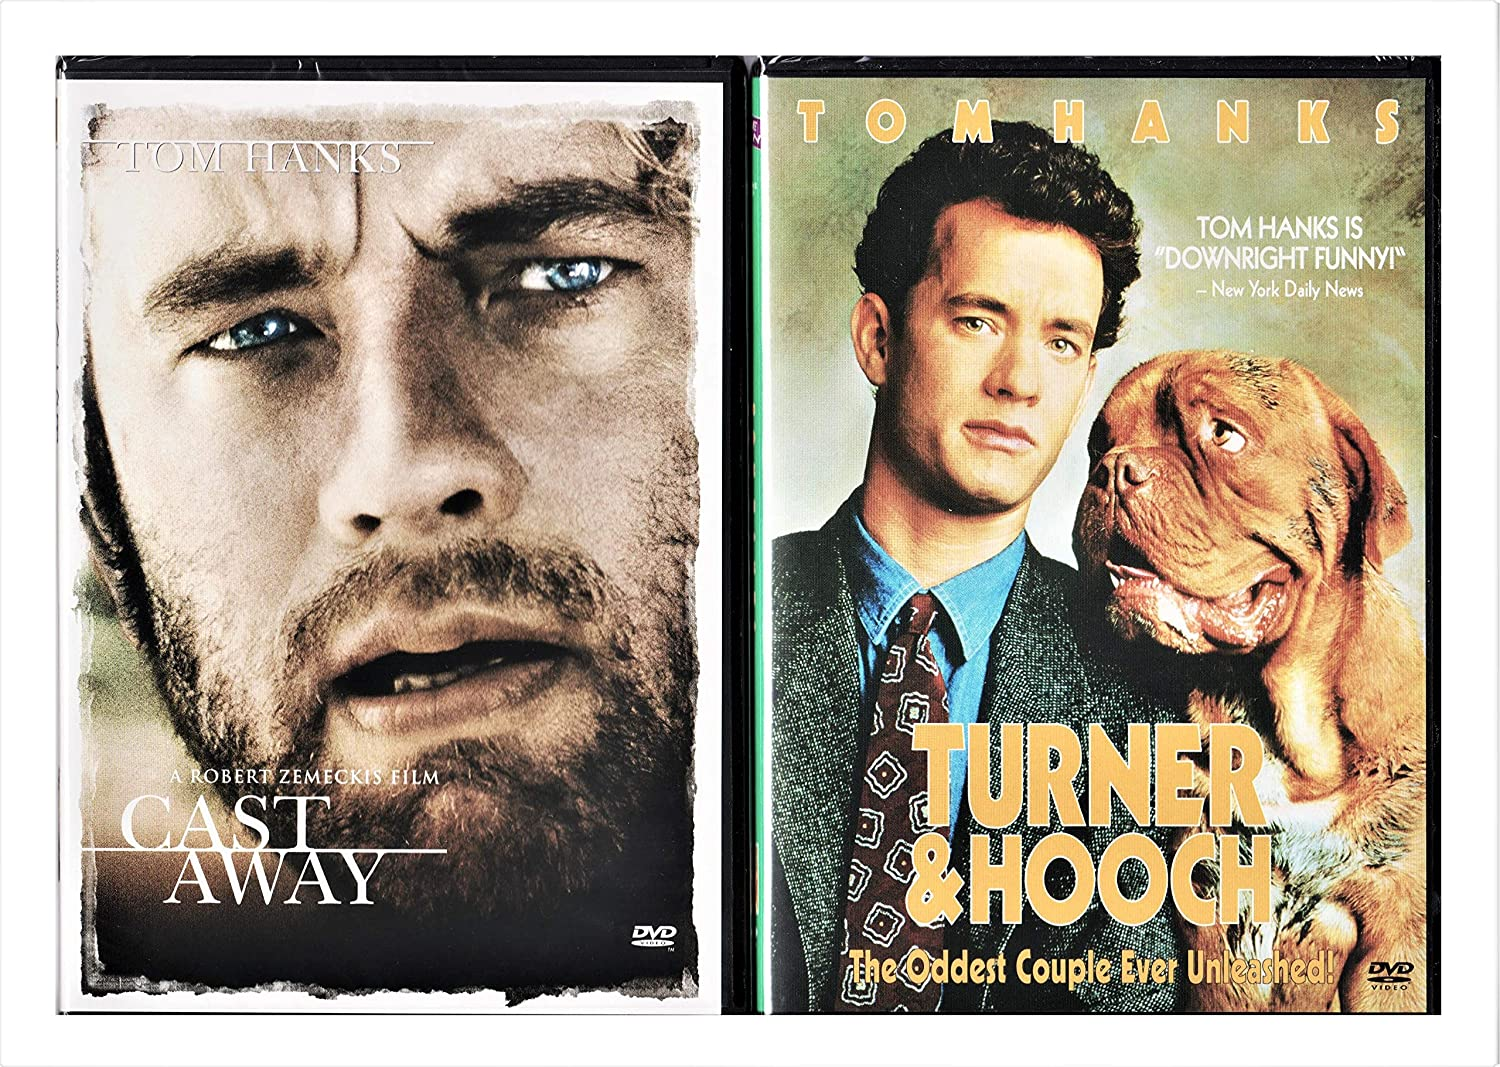 Tom Hanks Max 54% OFF Double Feature Purchase - Turner and 2-DVD Bu Hooch Cast Away